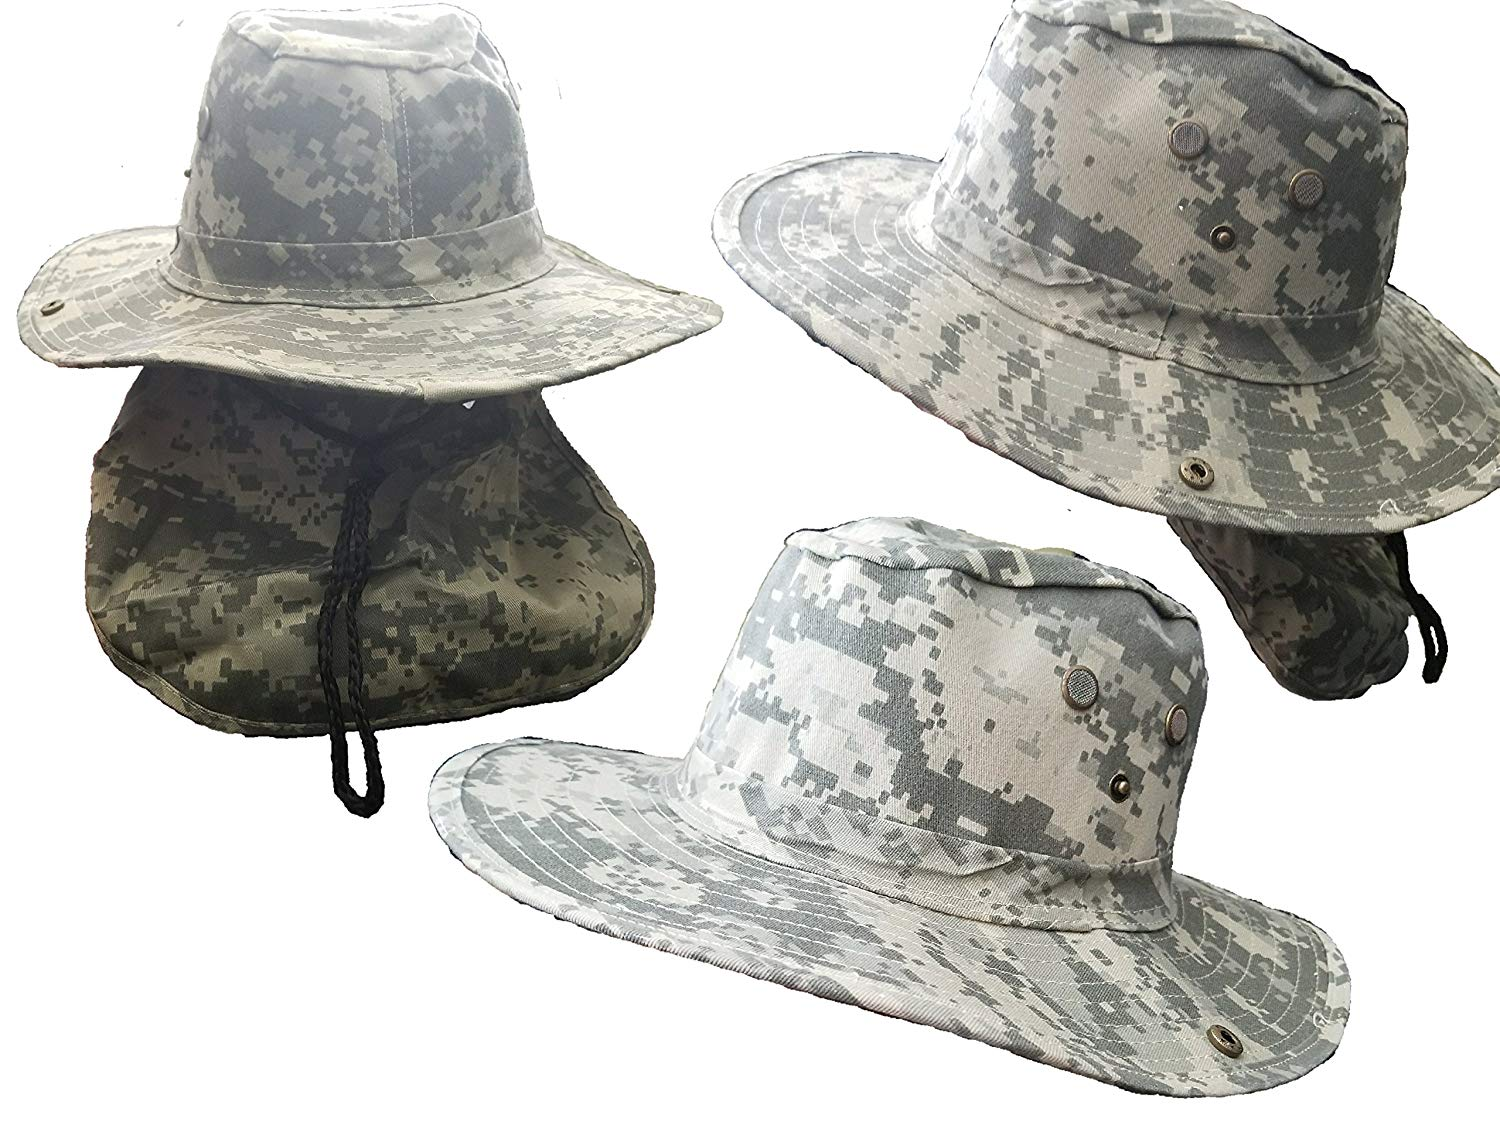 e87552fcb91 Get Quotations · BUNFIREs Bucket Cap Hunting Fishing Hiking Military Snap  Brim Neck Cover Army Mens Green Camouflage Hat